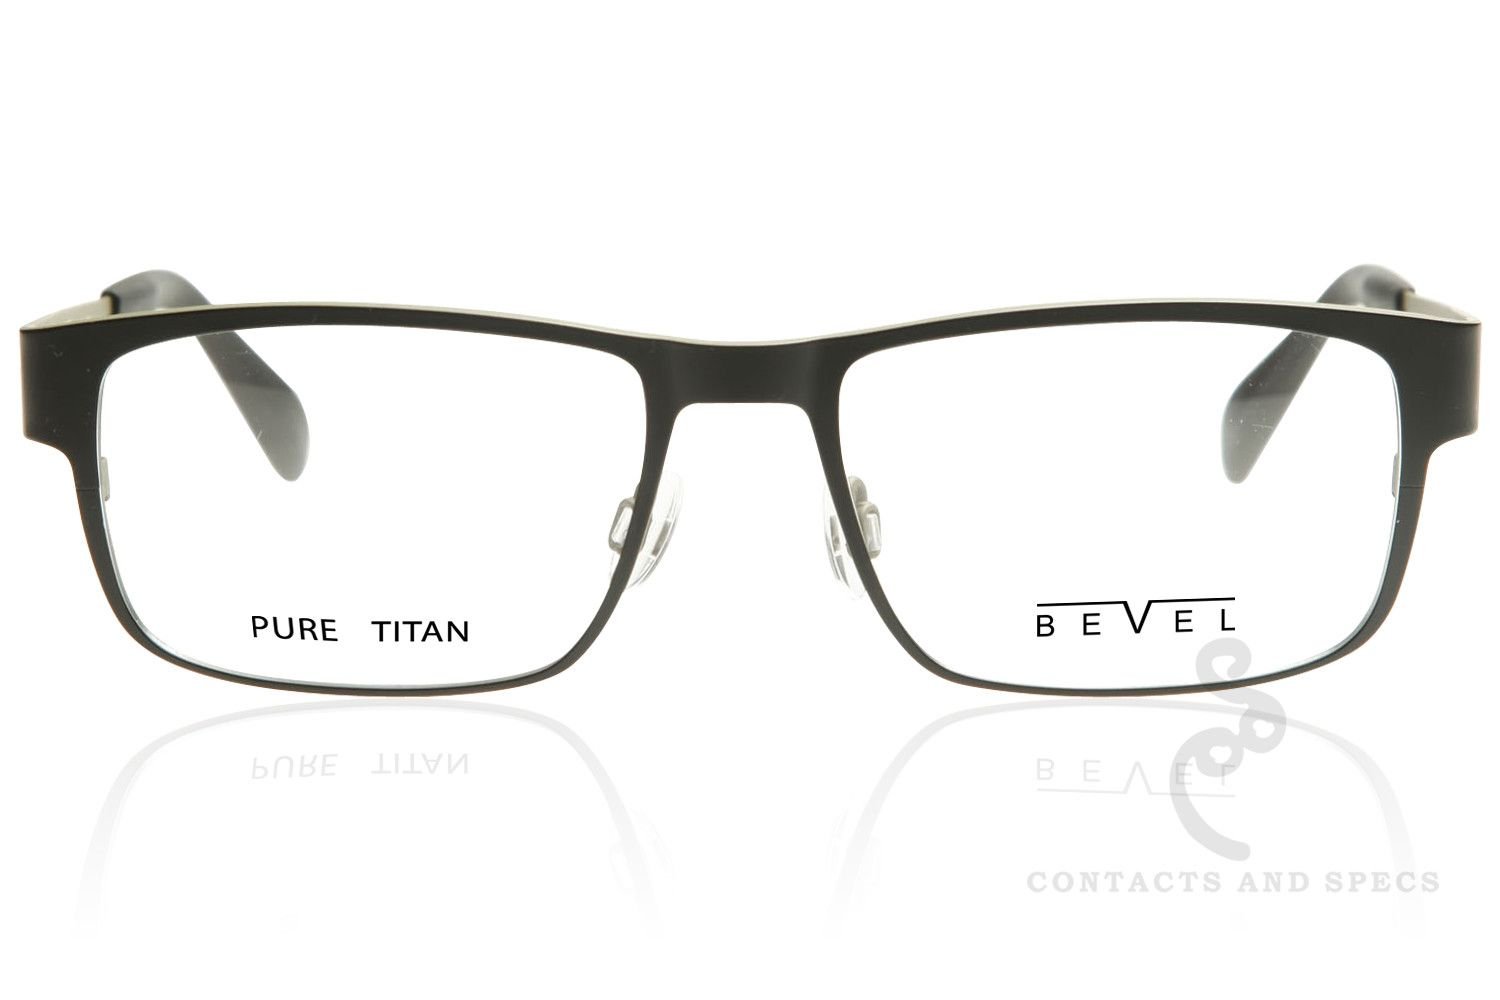 Bevel Spectacles David | Products | Pinterest | Products